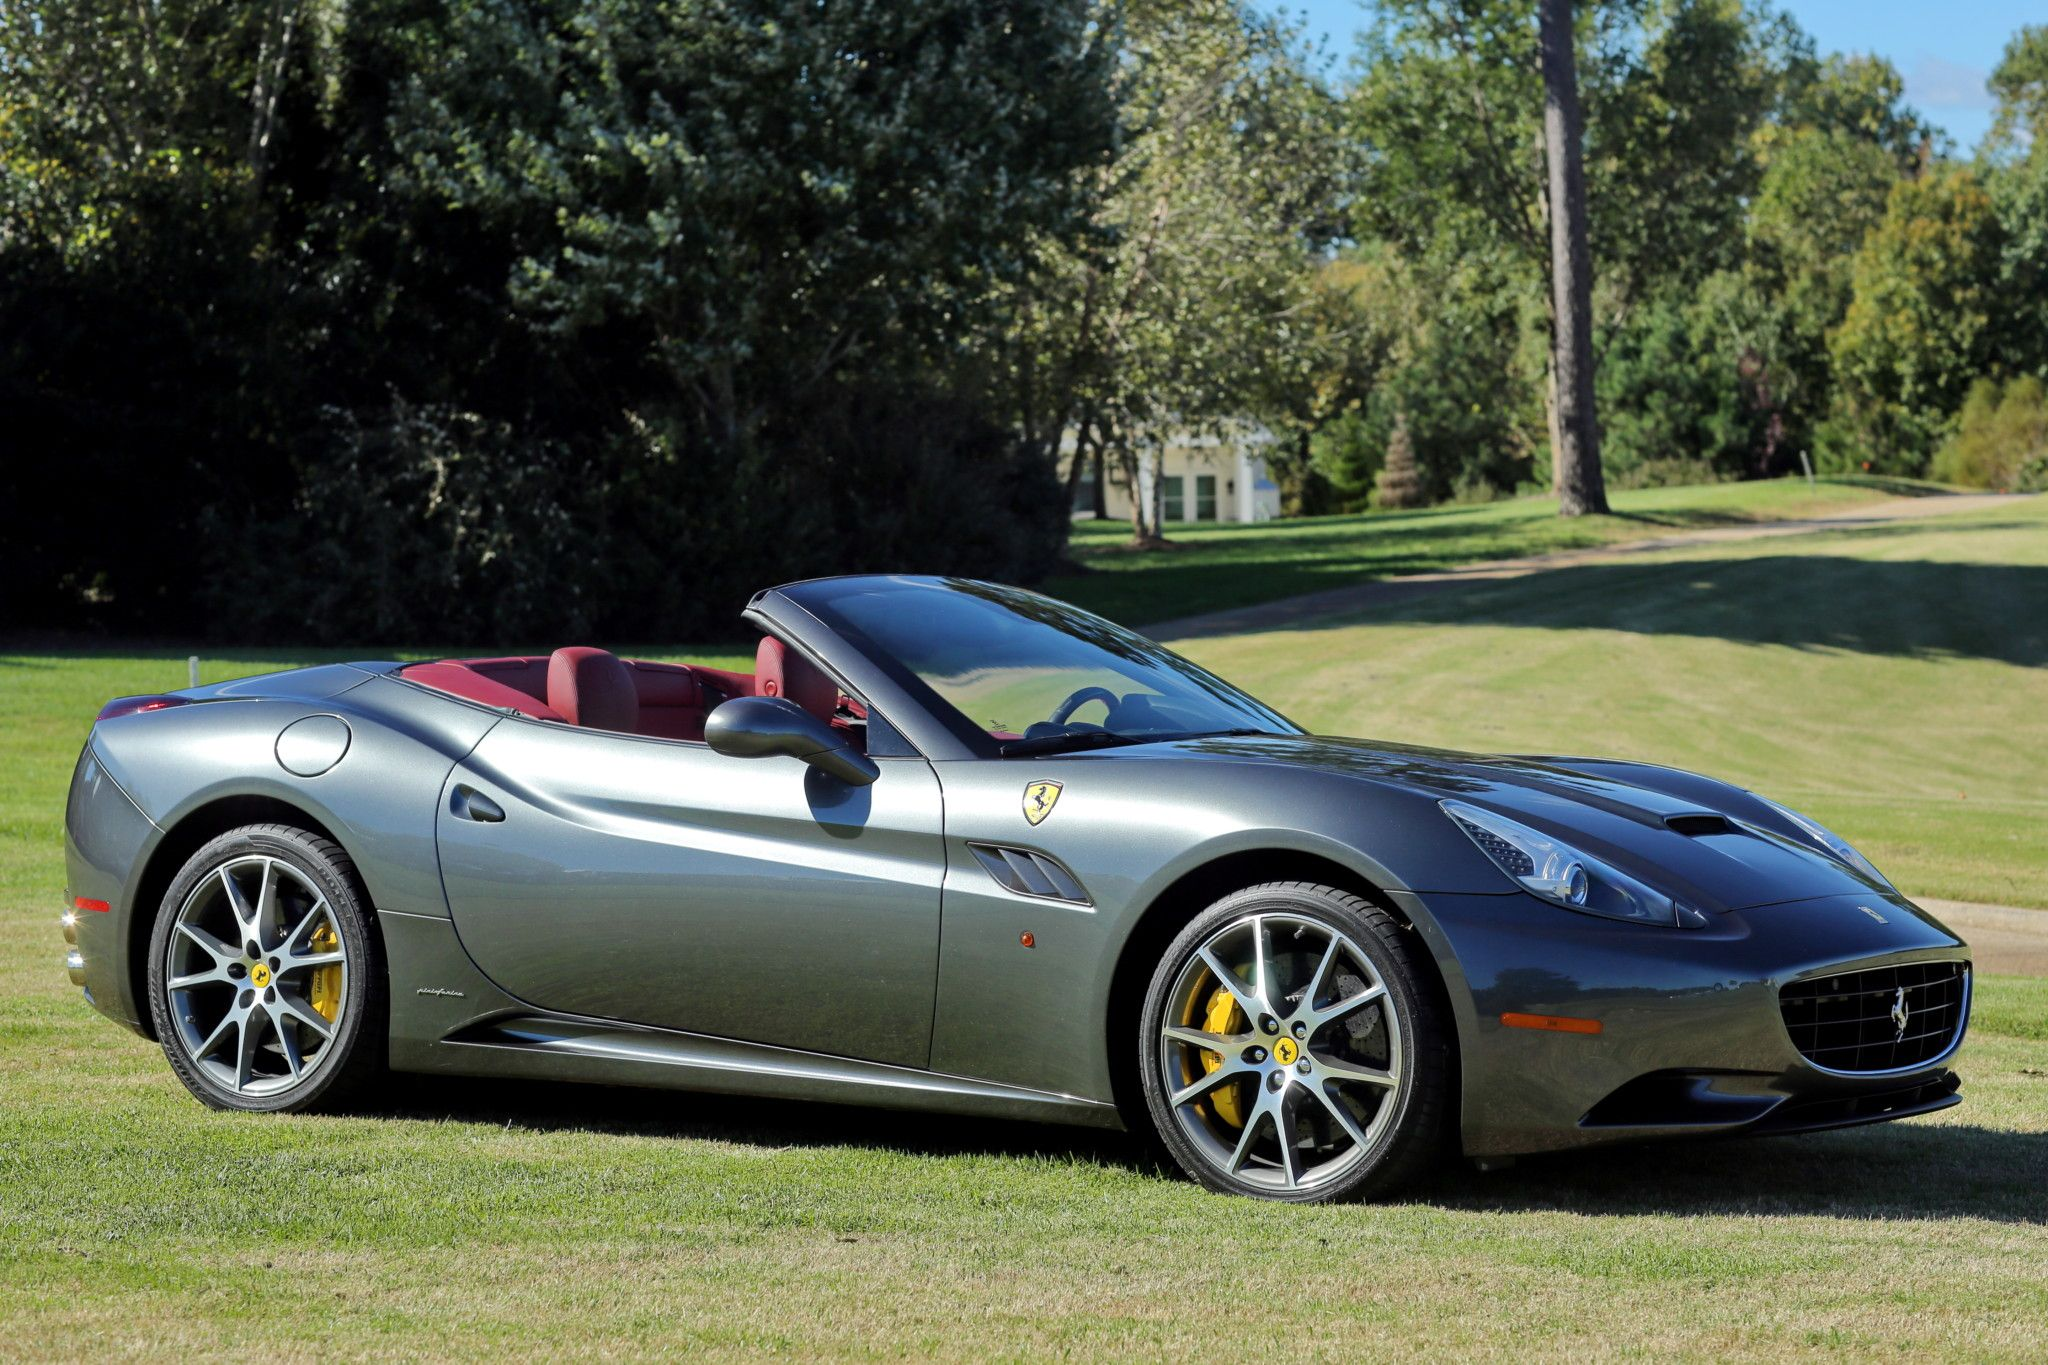 10k Mile 2010 Ferrari California 2 2 Ferrari California Ferrari California